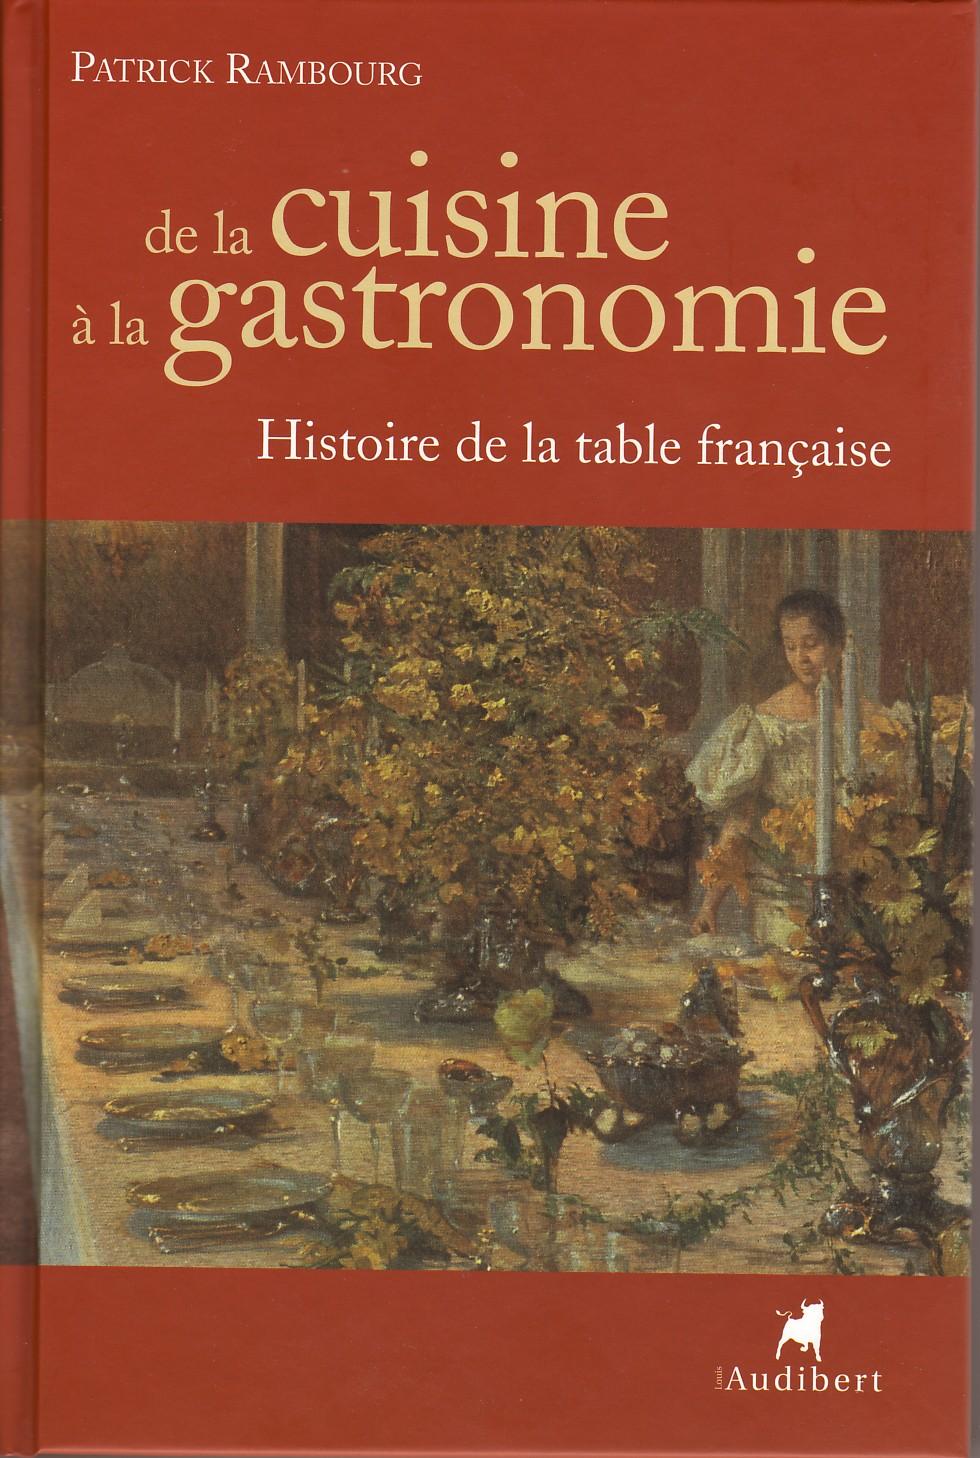 de la cuisine la gastronomie histoire de la table fran aise patrick rambourg. Black Bedroom Furniture Sets. Home Design Ideas